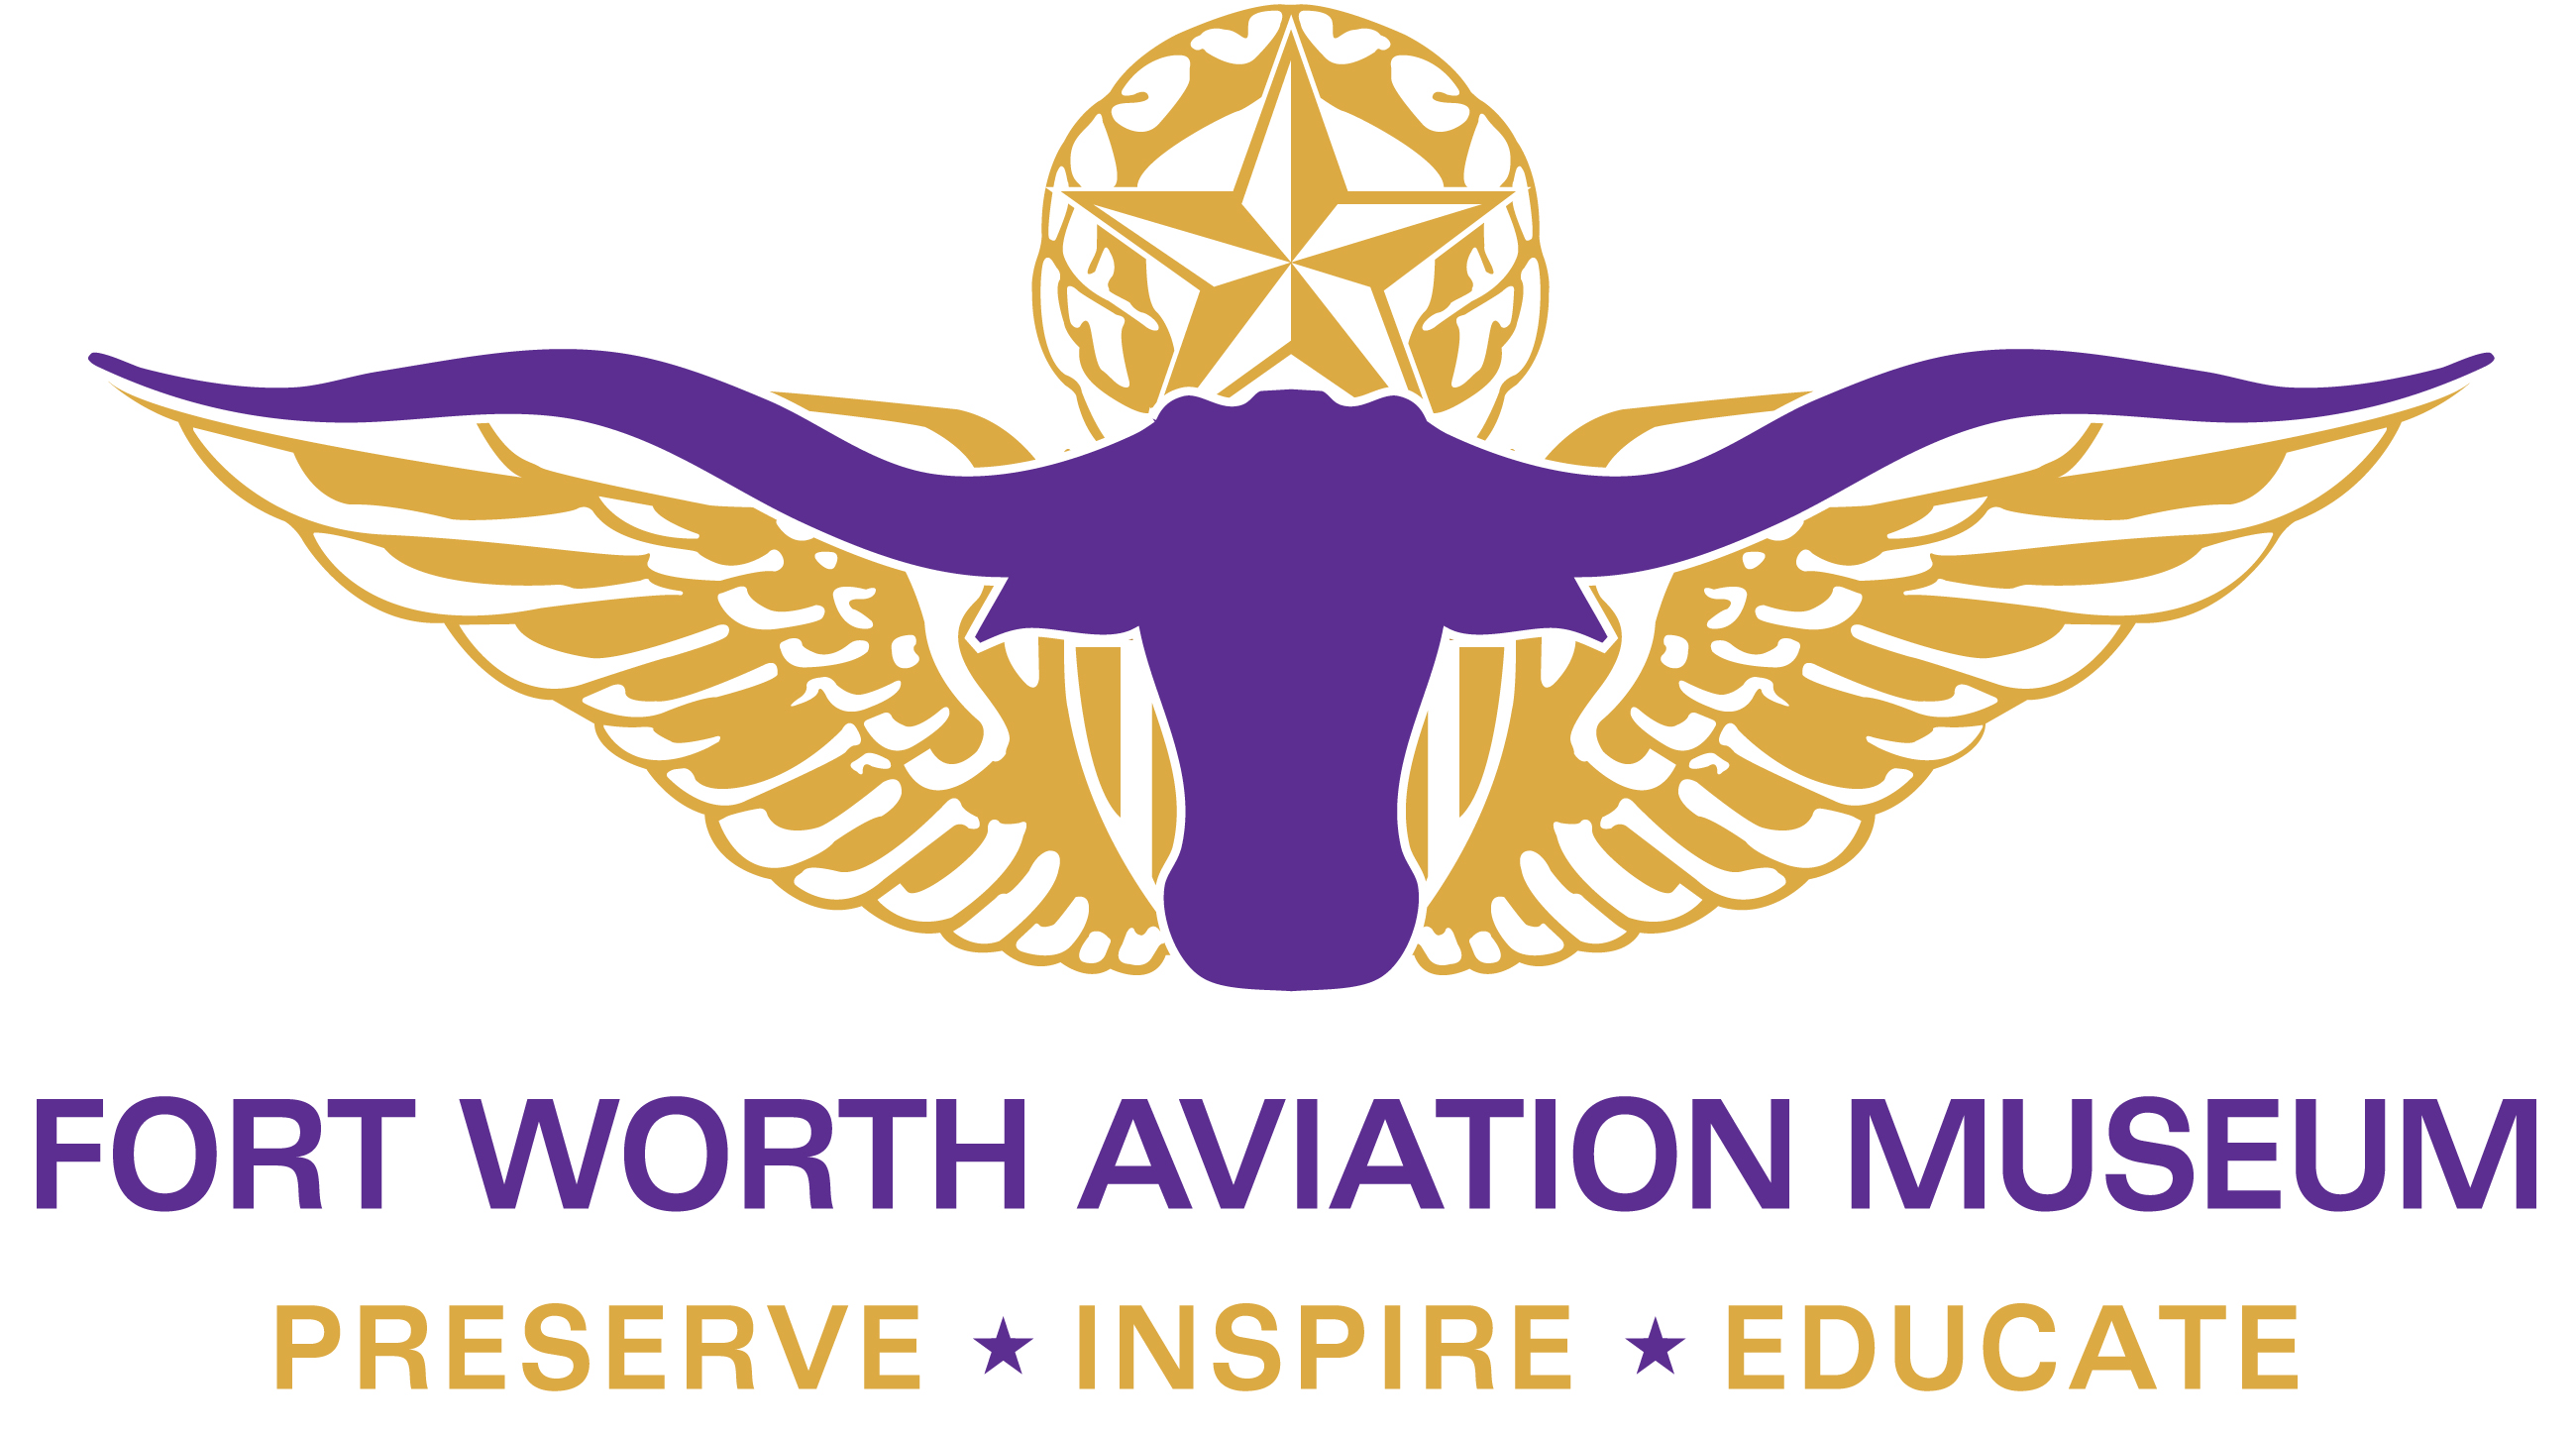 Fort Worth Aviation Museum Logo